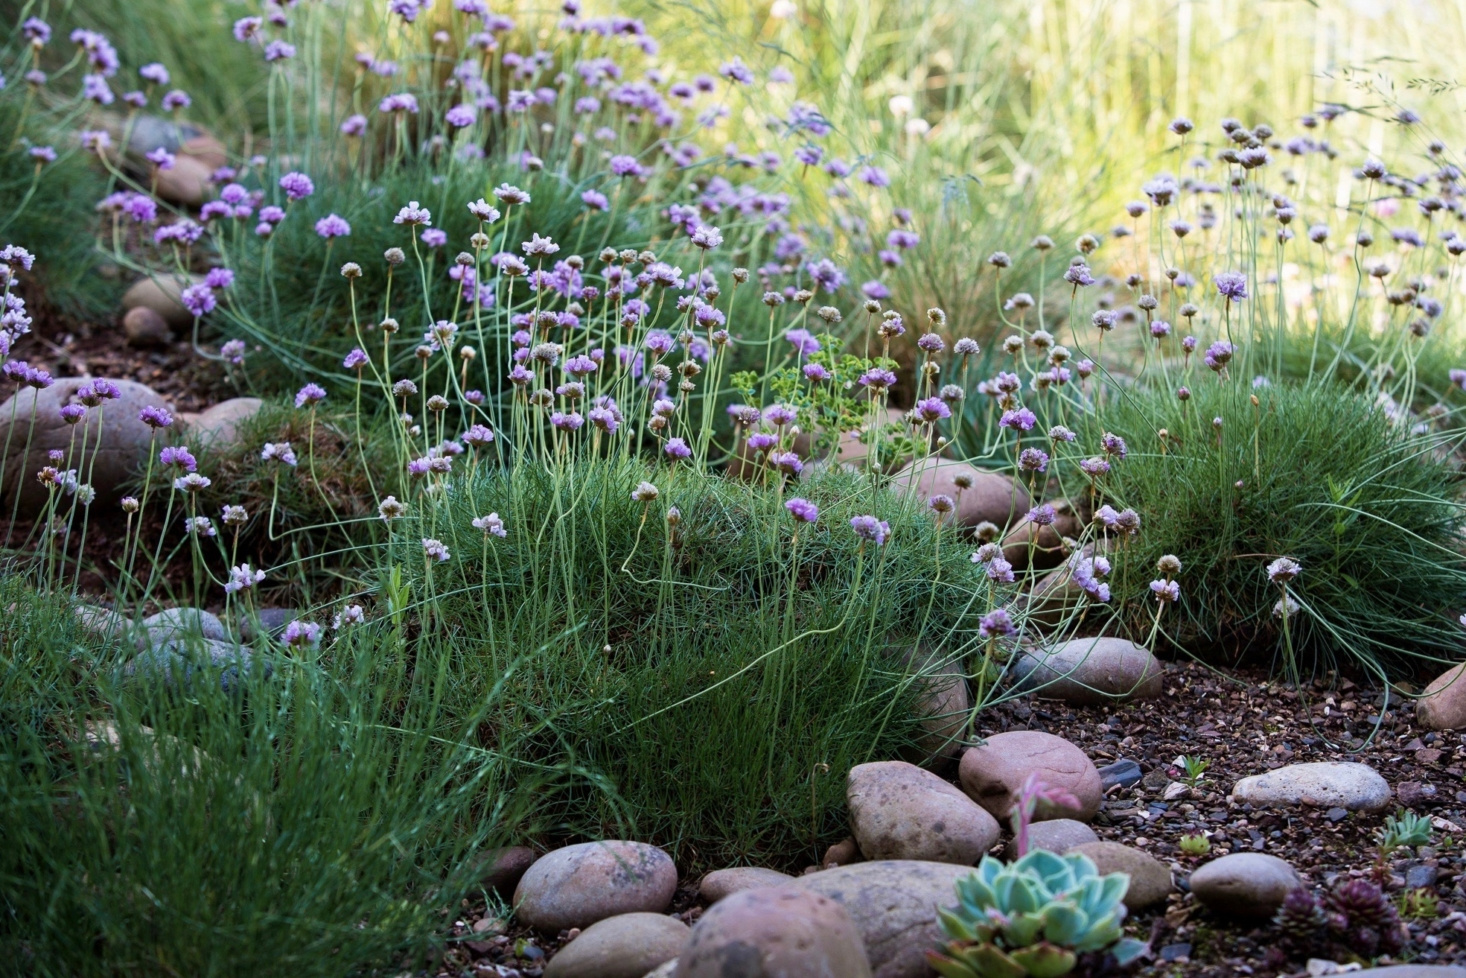 sea thrift (Armeria maritima) forms helpful mats of ground cover, aided here by stones and gravel